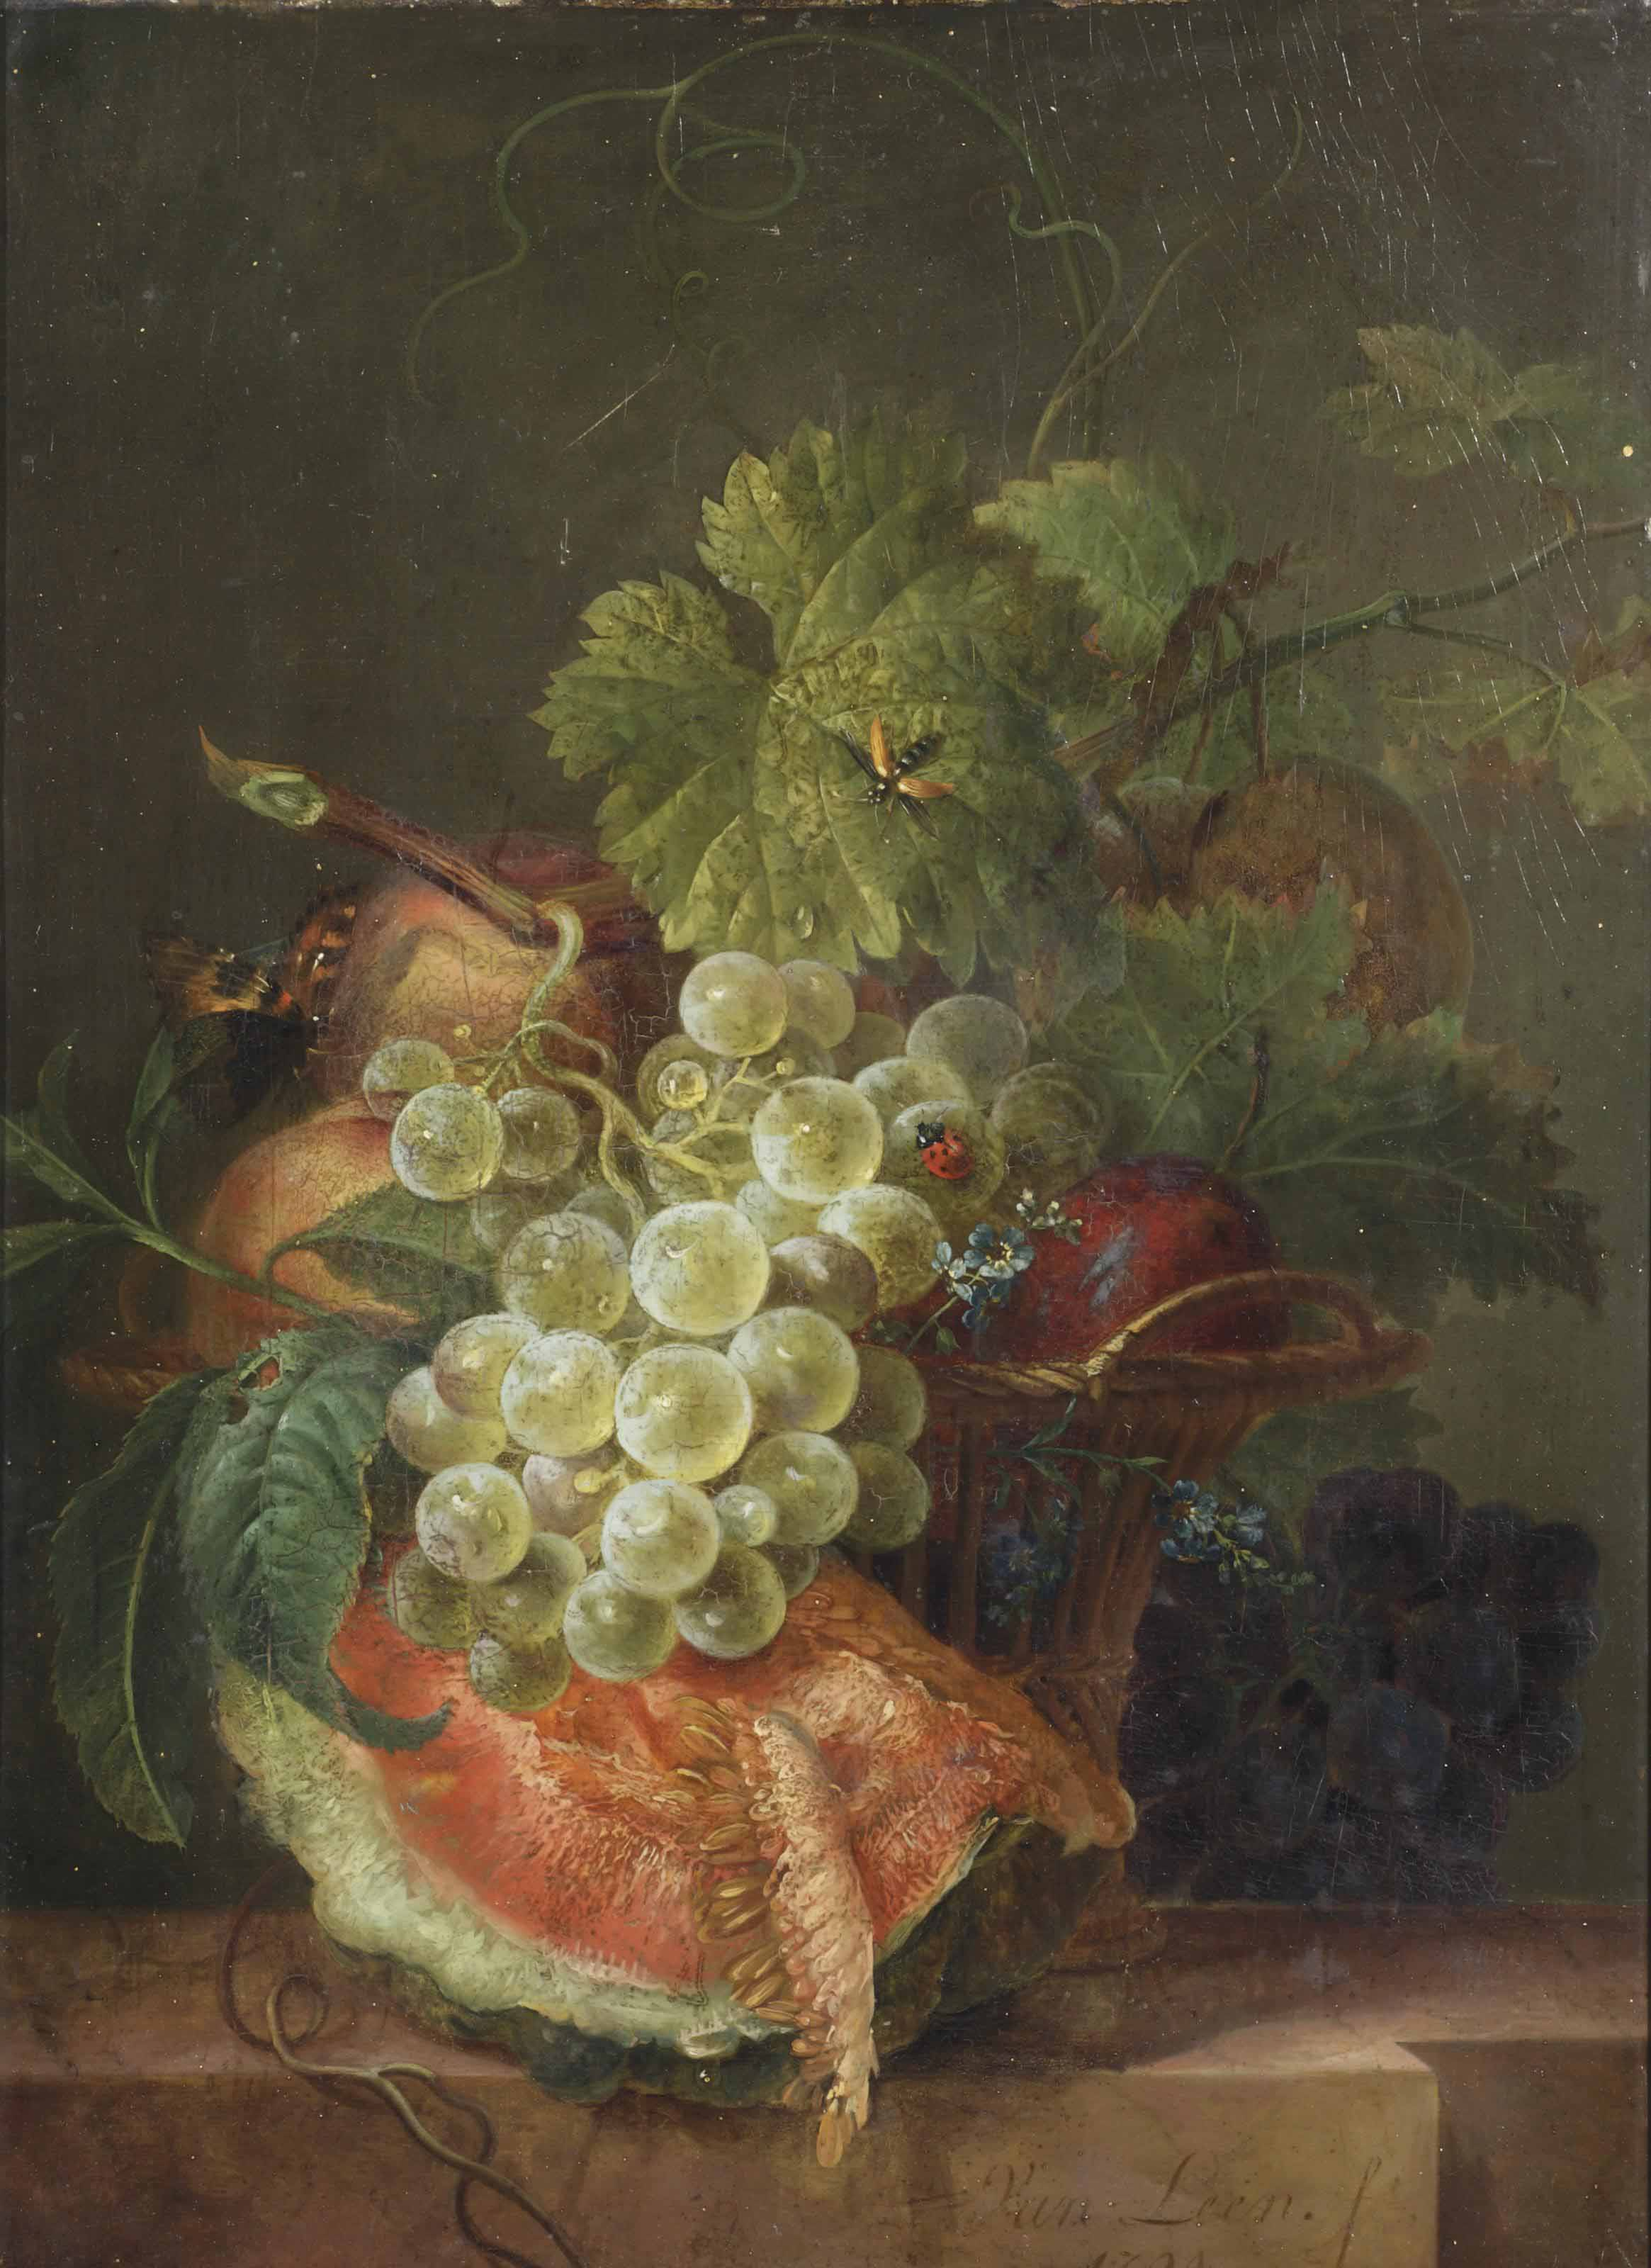 A slice of melon and grapes in a basket, with a ladybug and other insects, all on a marble ledge